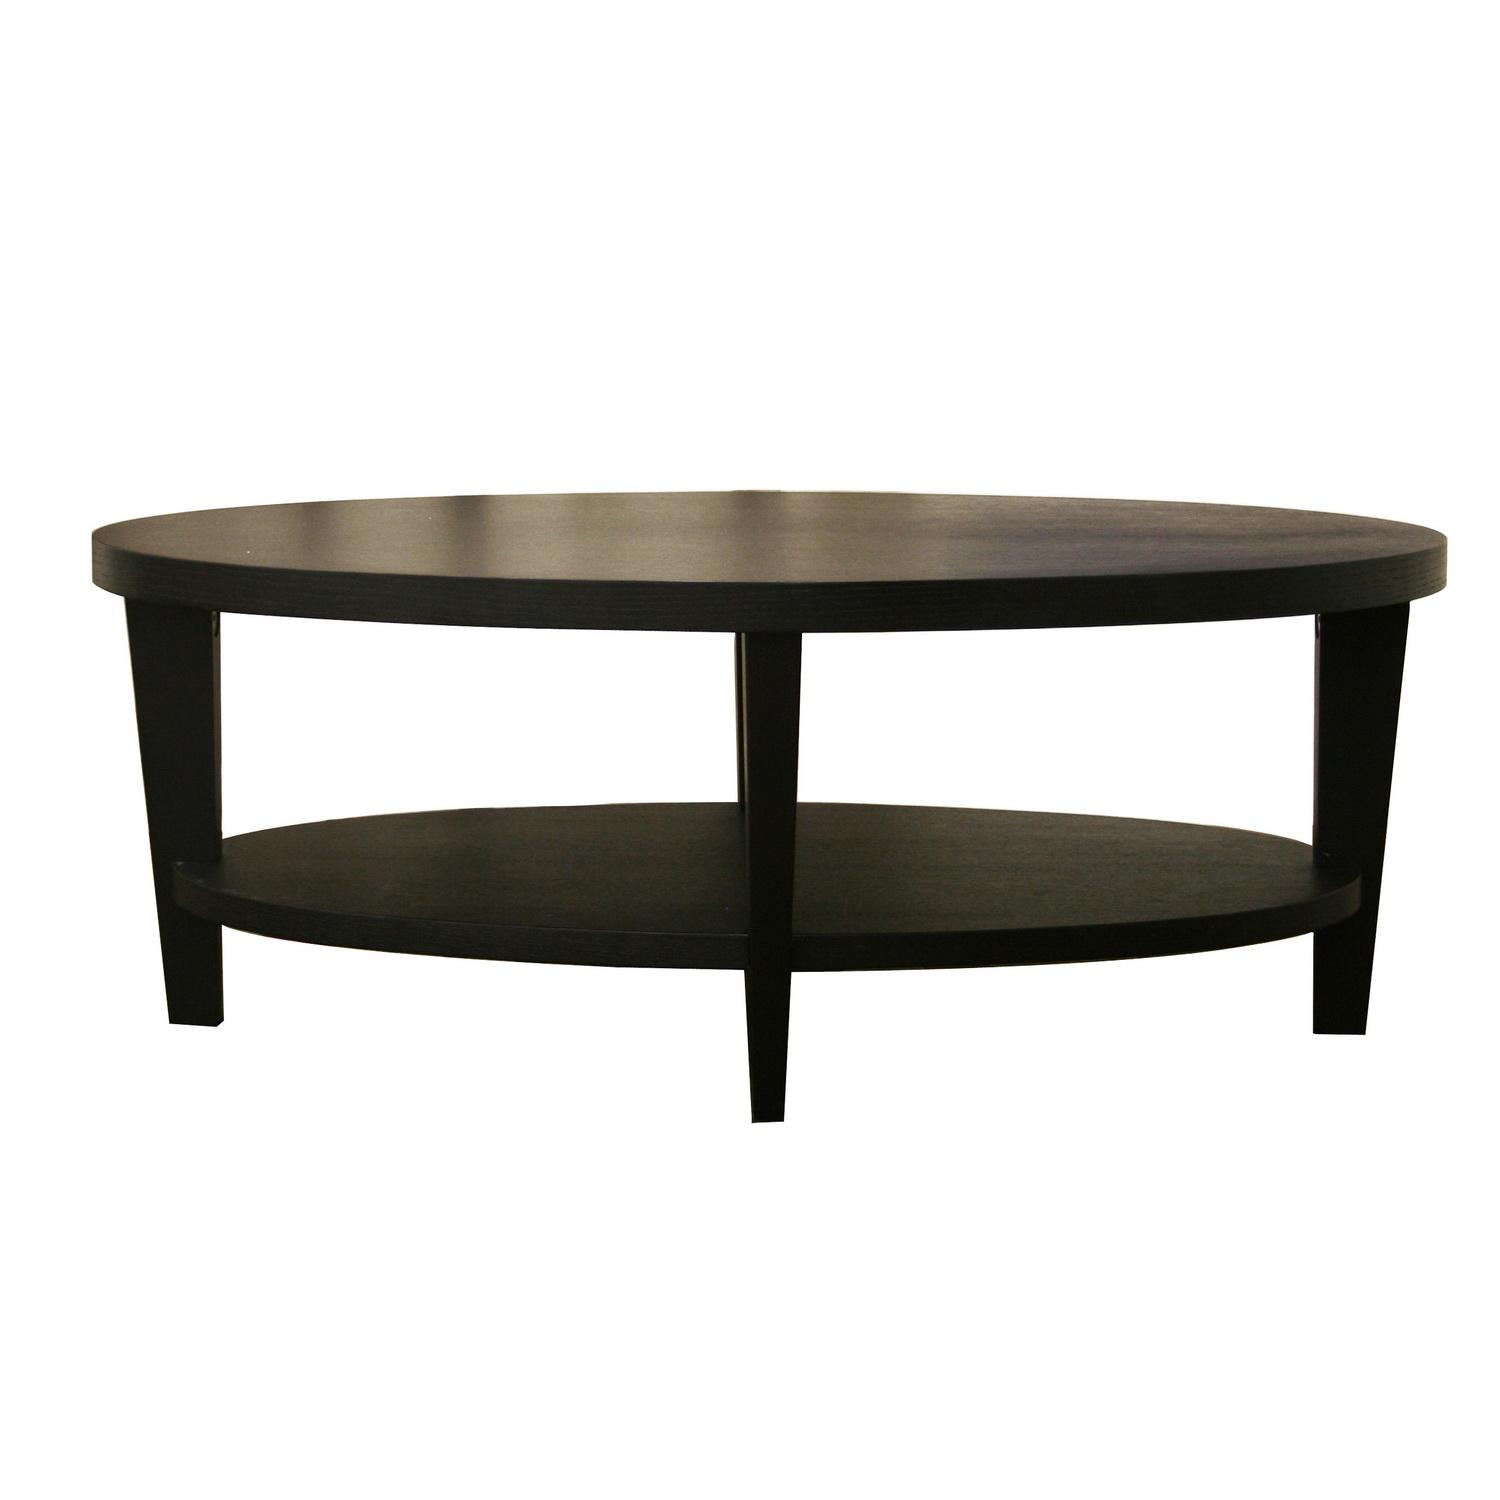 extraordinary glass coffee table ikea stylish ideas choice virtually upon determine every adorning top display end base for dark wood accent tables dog cage elephant mirror side